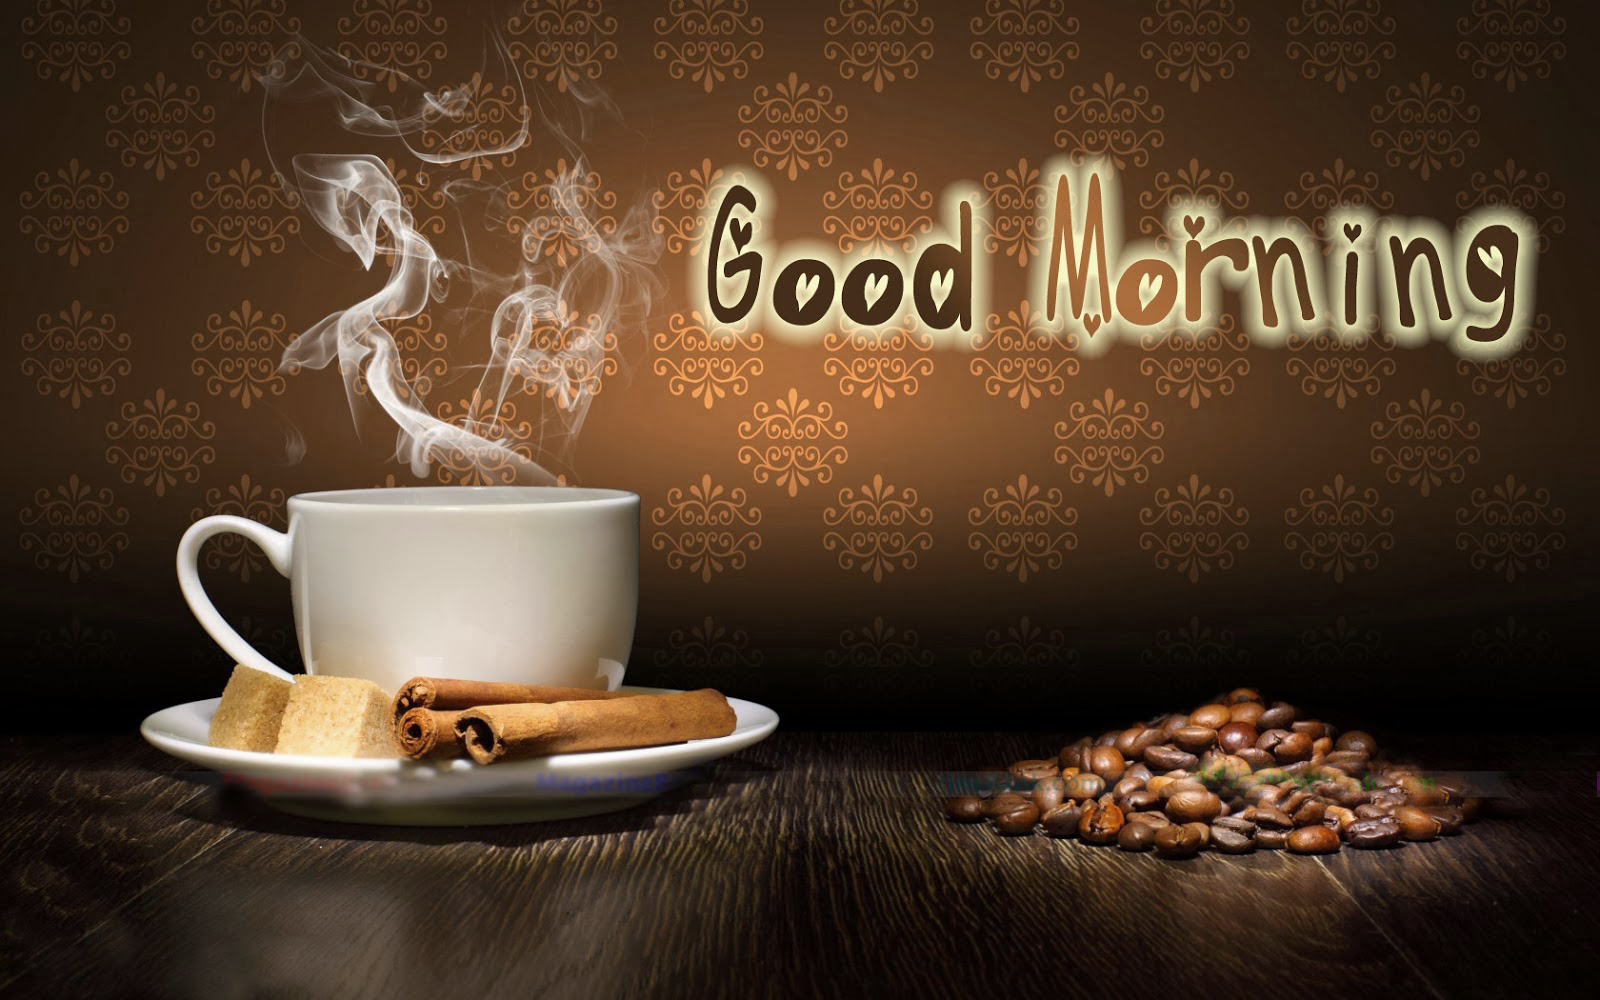 lego good morning coffee wallpaper - photo #6